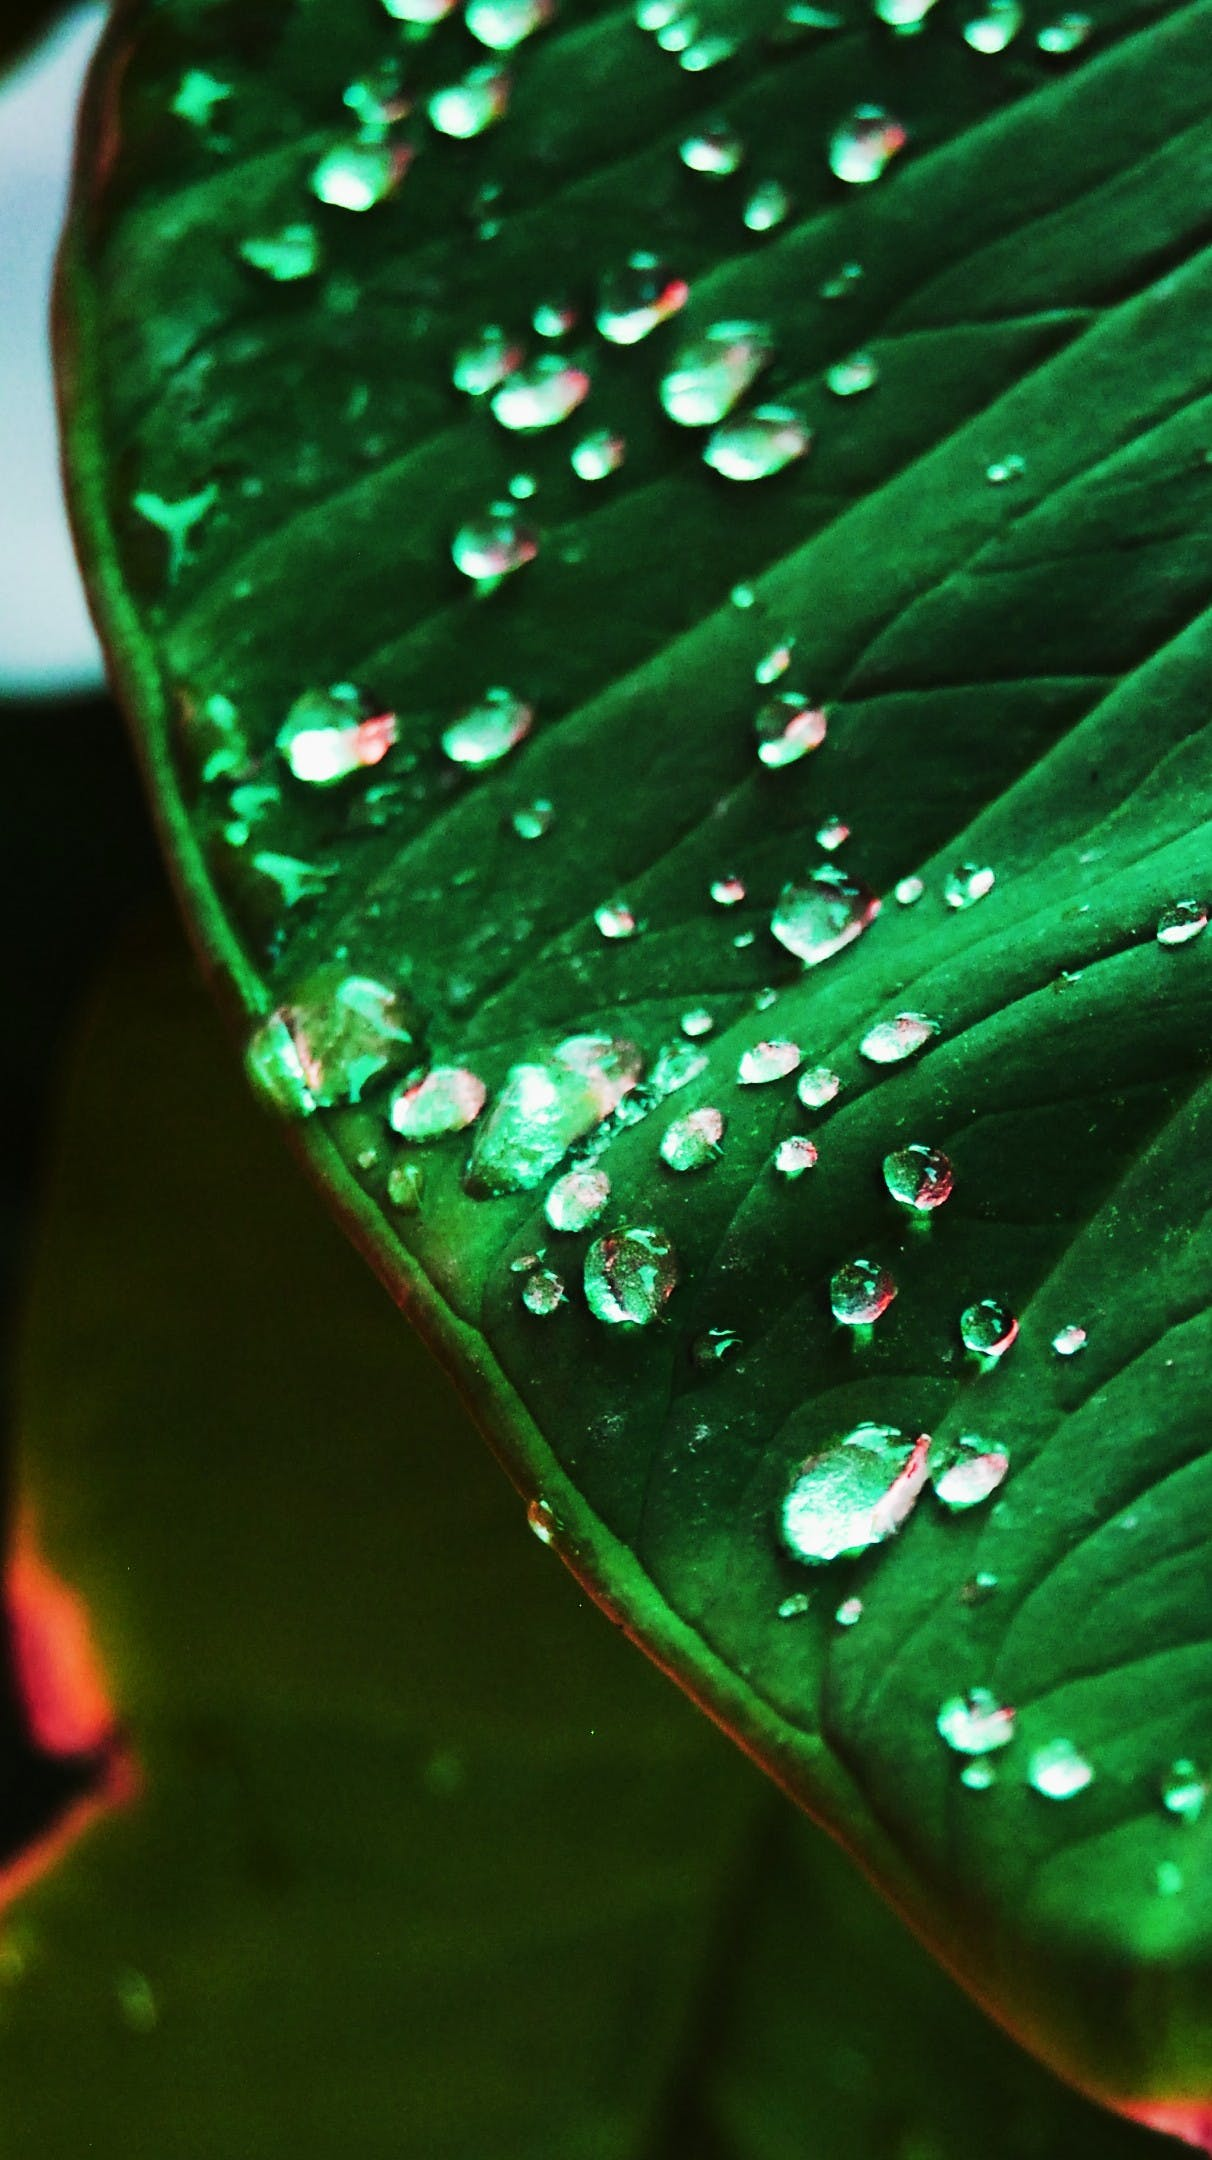 Free stock photo of leaf water drops green